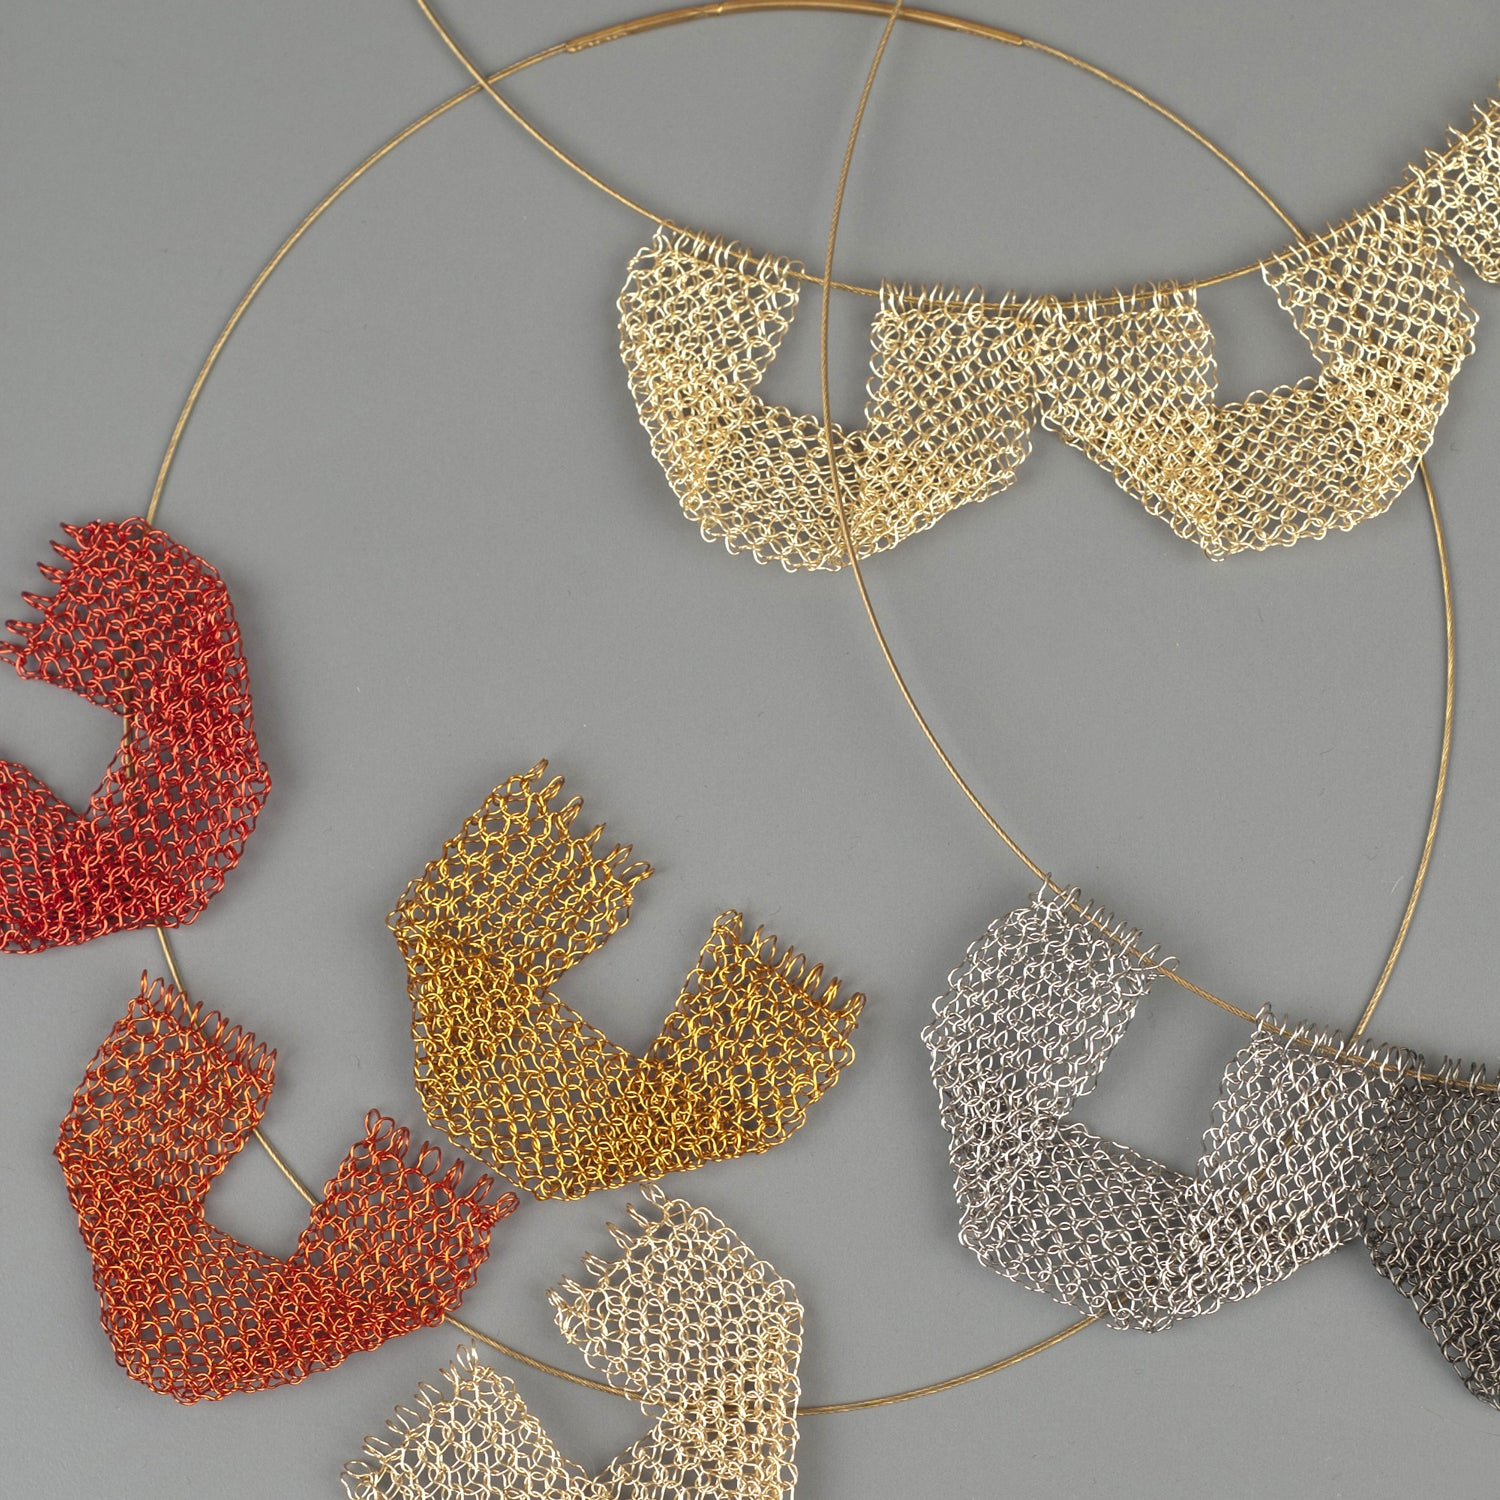 Keep it simple - a new geometric wire crochet necklace - Yooladesign